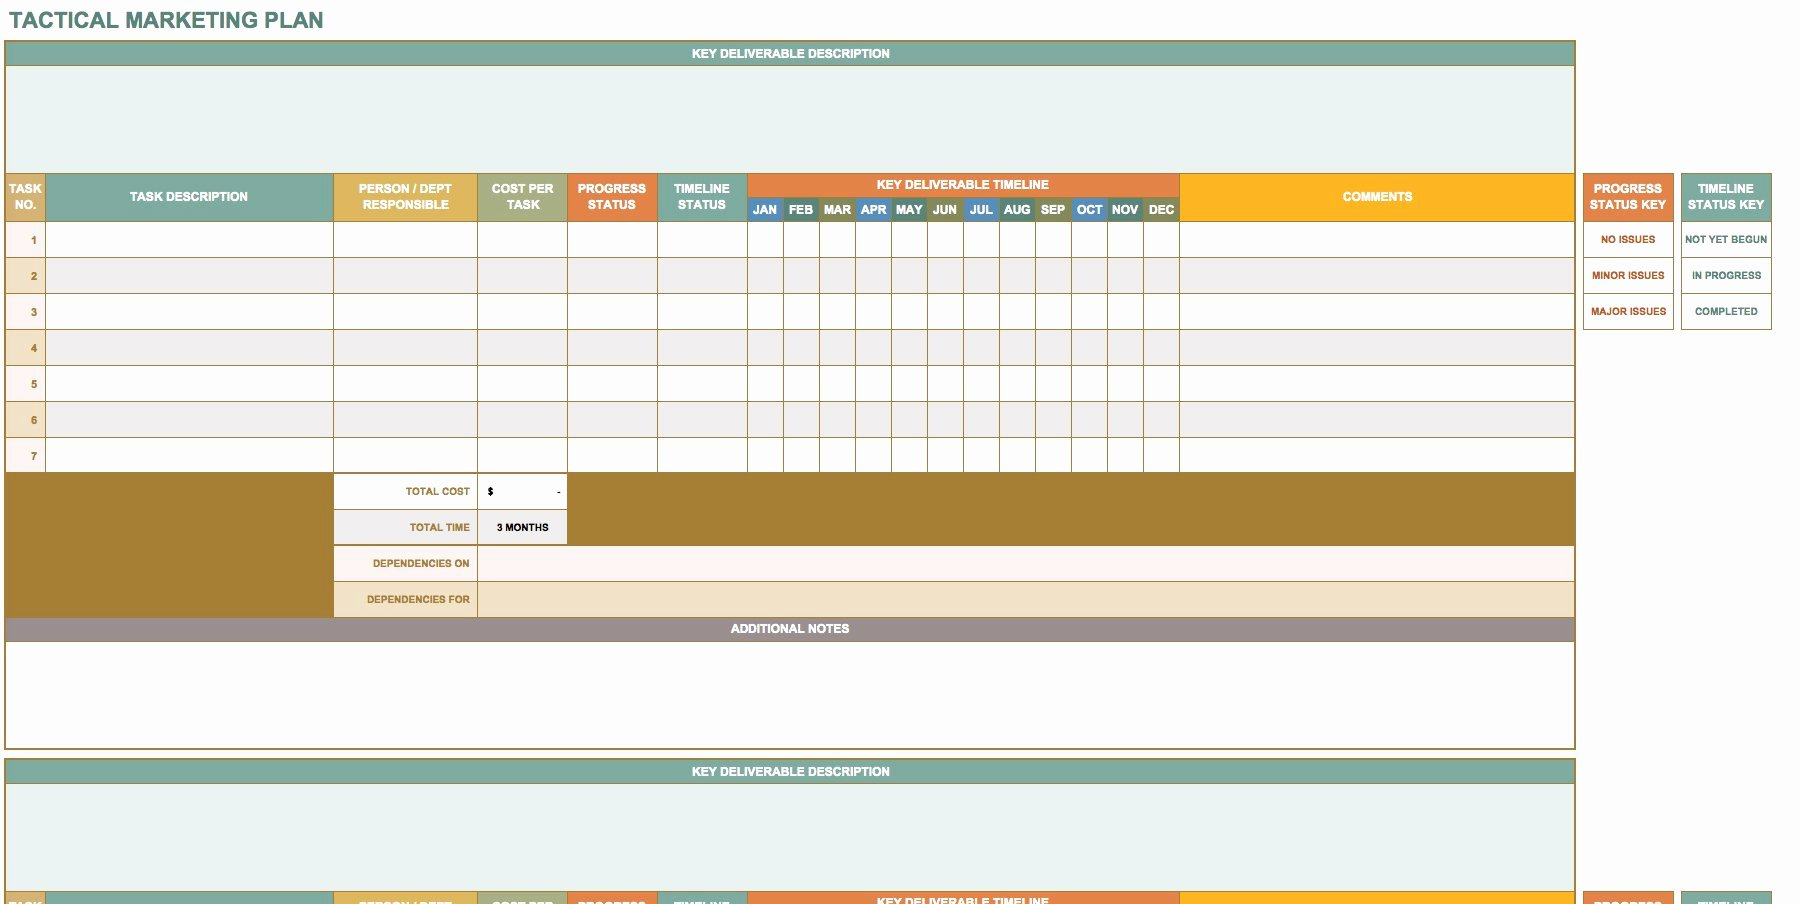 Marketing Plan Template Excel New Free Marketing Plan Templates for Excel Smartsheet